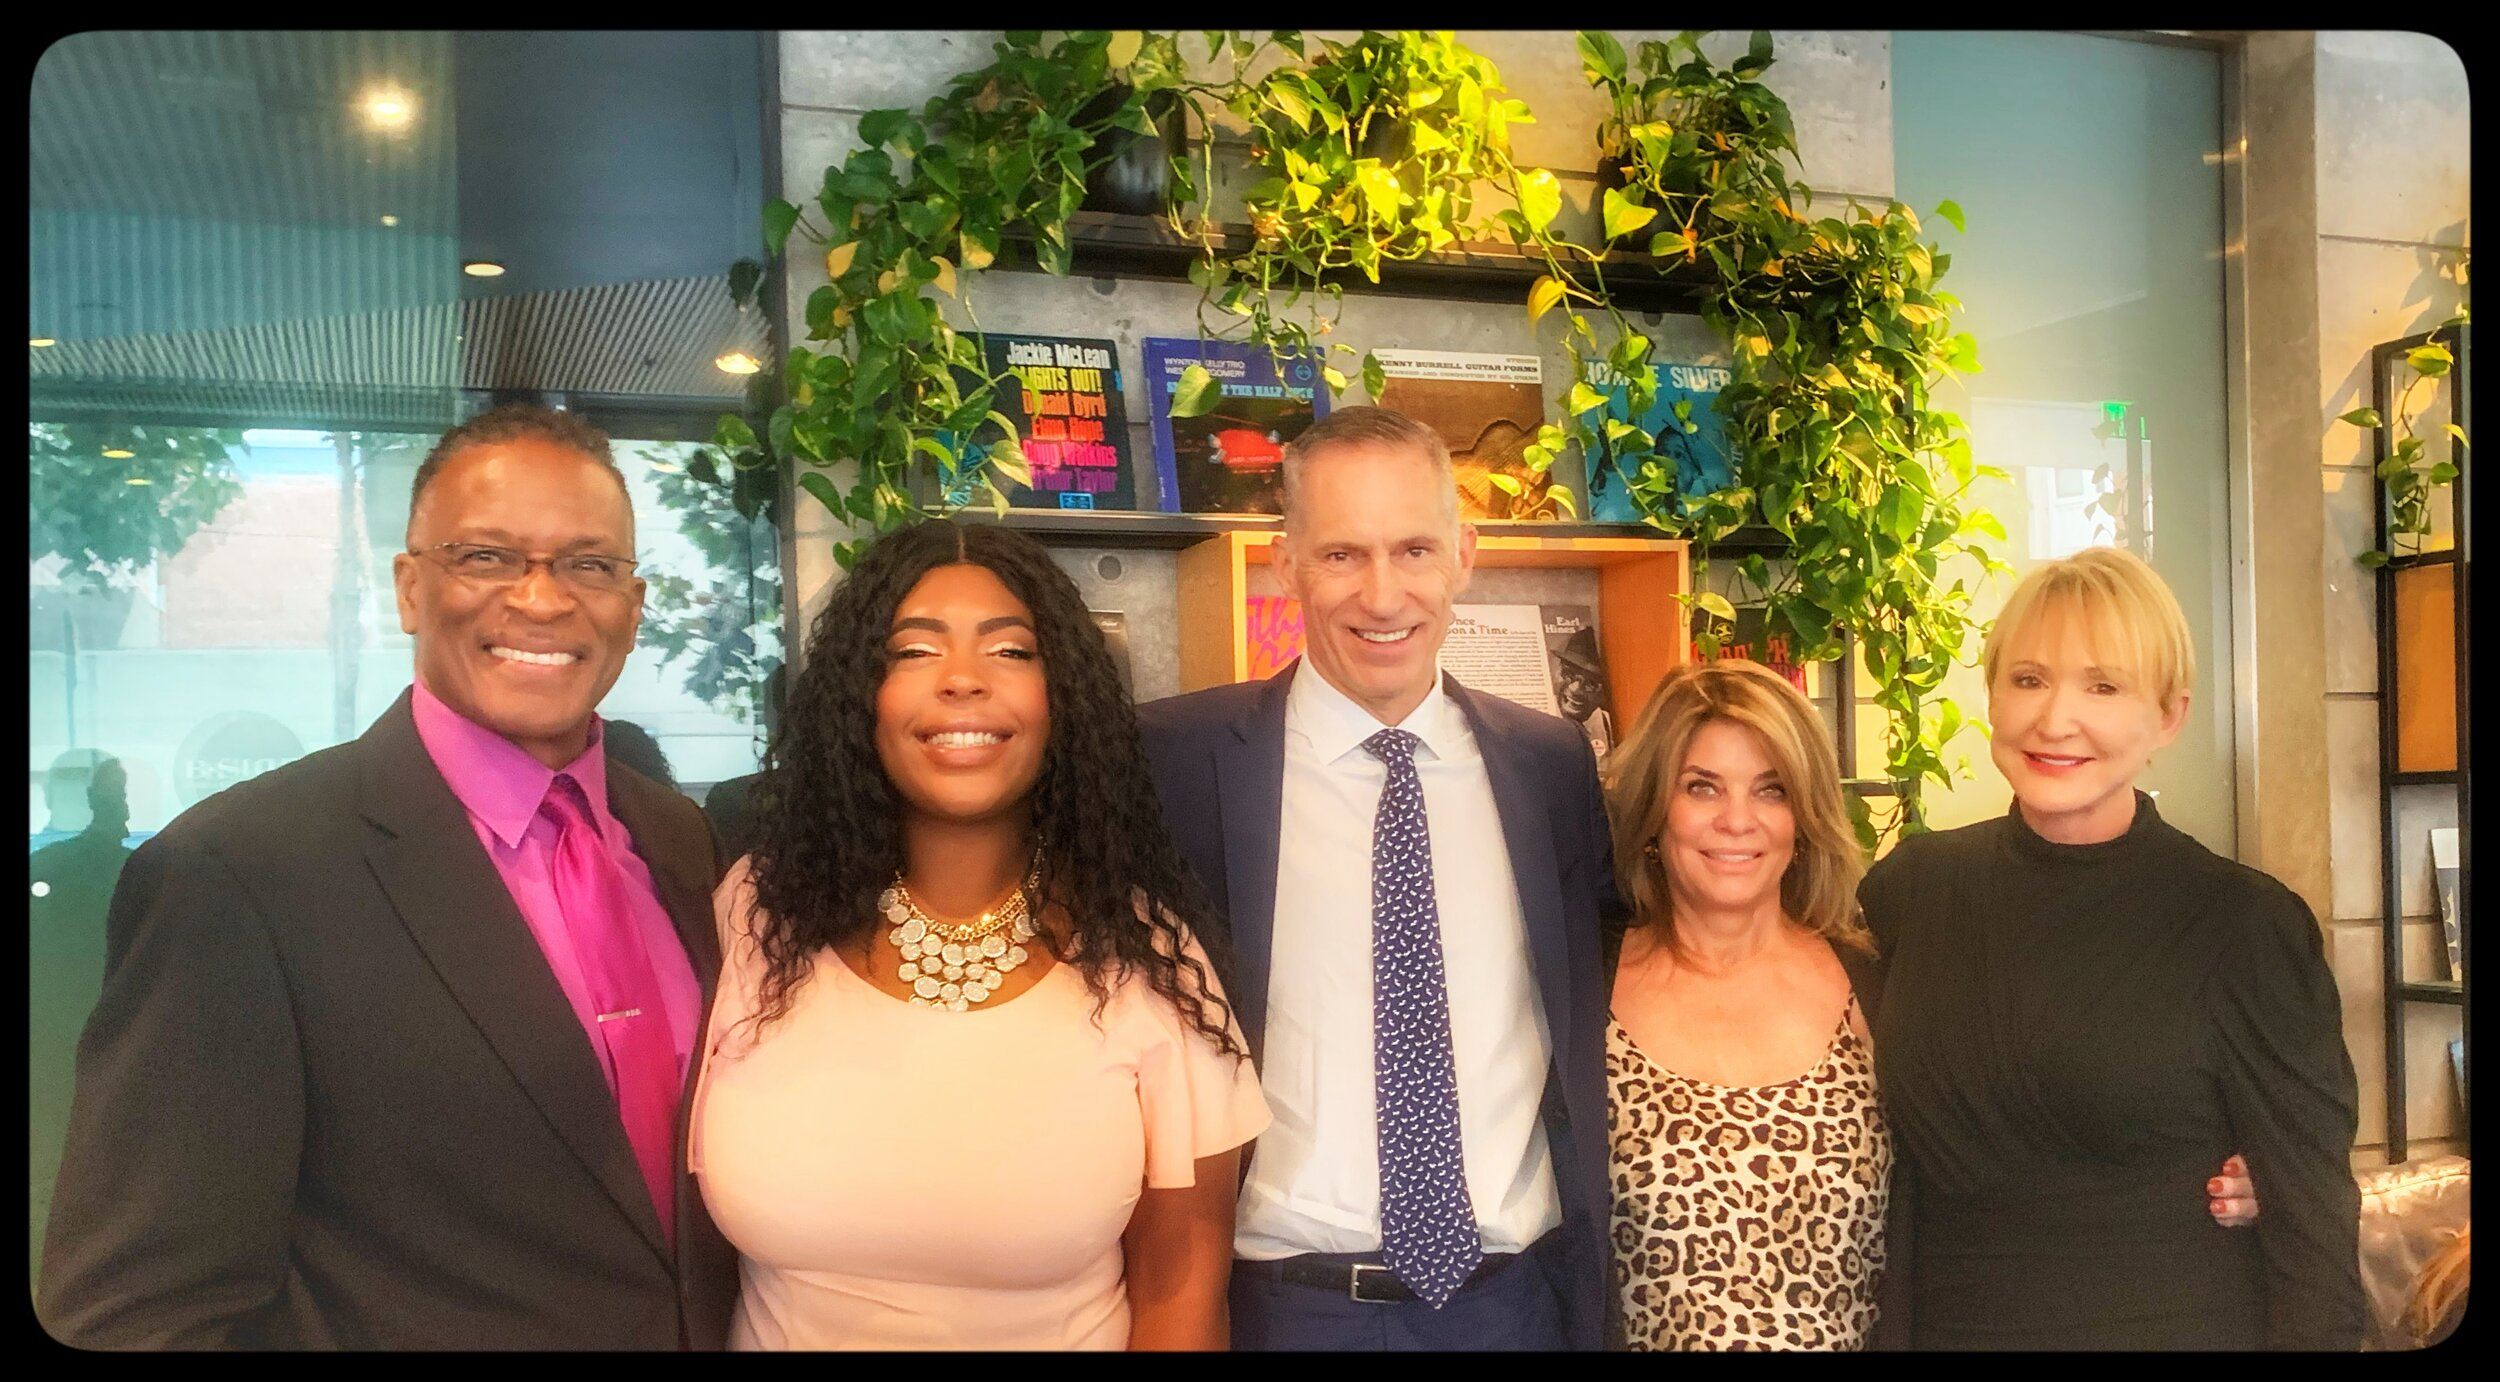 From left: Dave Clark, KTVU-TV anchor and In Concert with Caminar emcee; Shrtonay; Mark Cloutier, Caminar CEO; Carole Middleton, In Concert with Caminar Co-Chair and Caminar Board Member; Linda Leao, In Concert with Caminar Co-Chair and Caminar Board Member